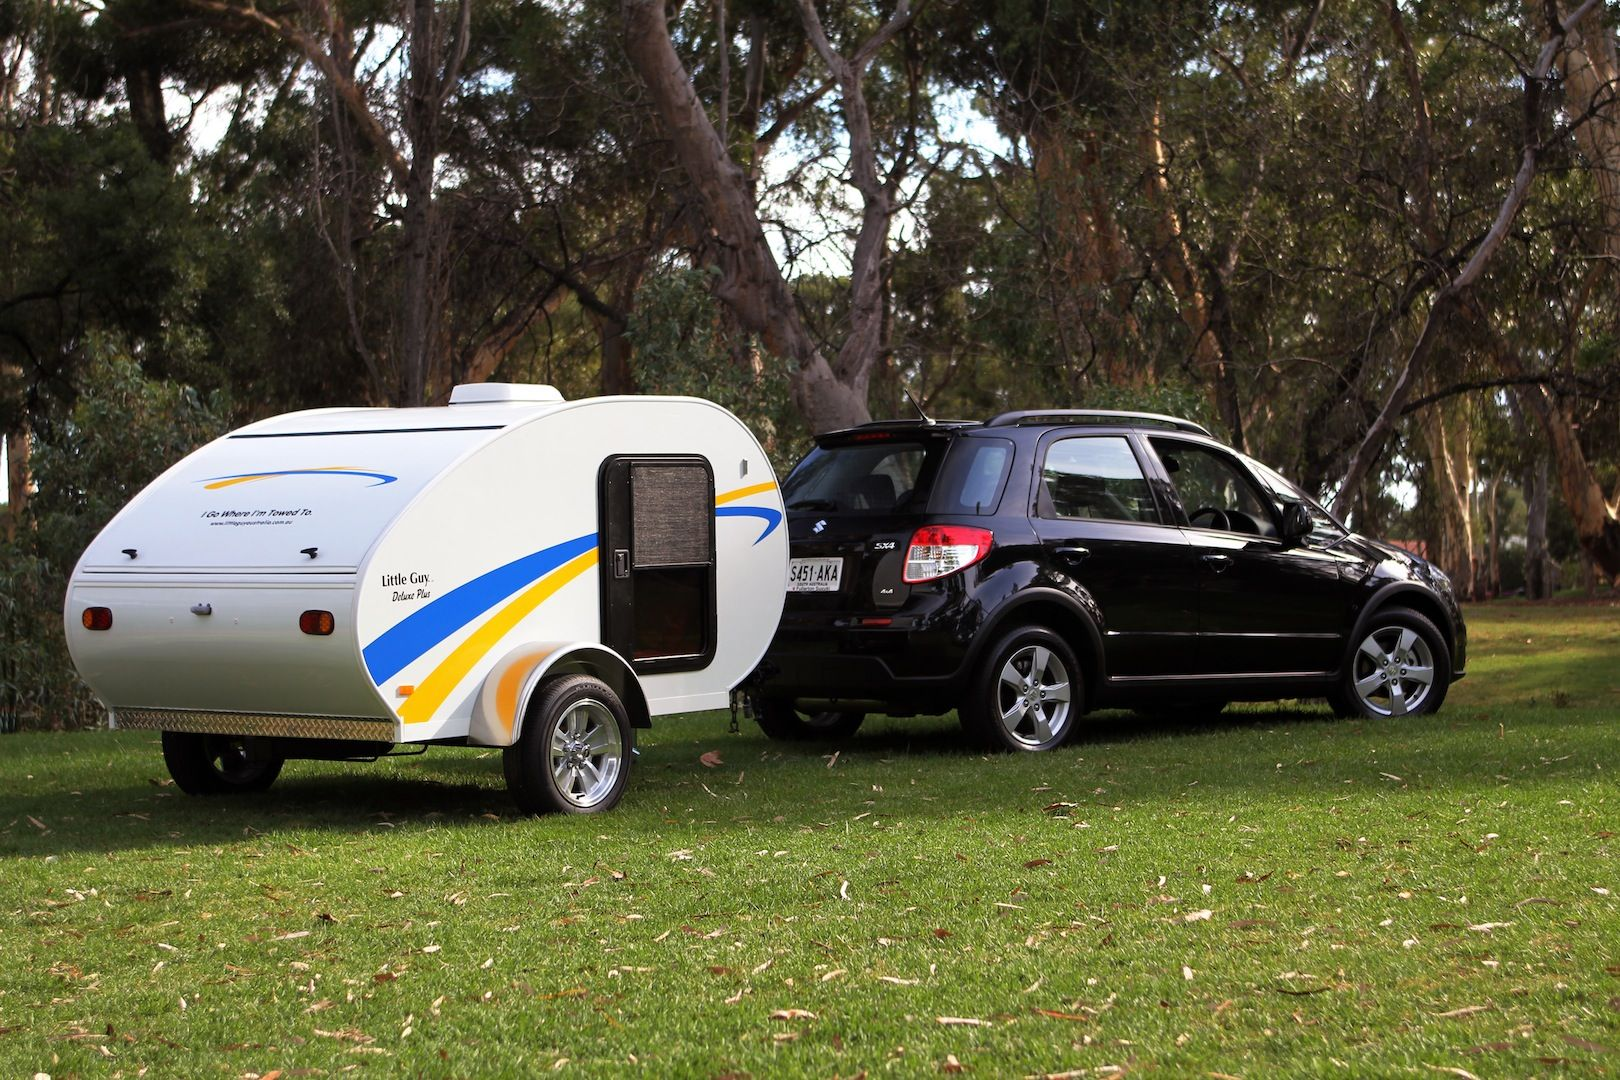 Camper For Small Cars Little Guy Trailers Priced From 10 460 Small Camper Trailers Small Campers Camper Trailer Australia